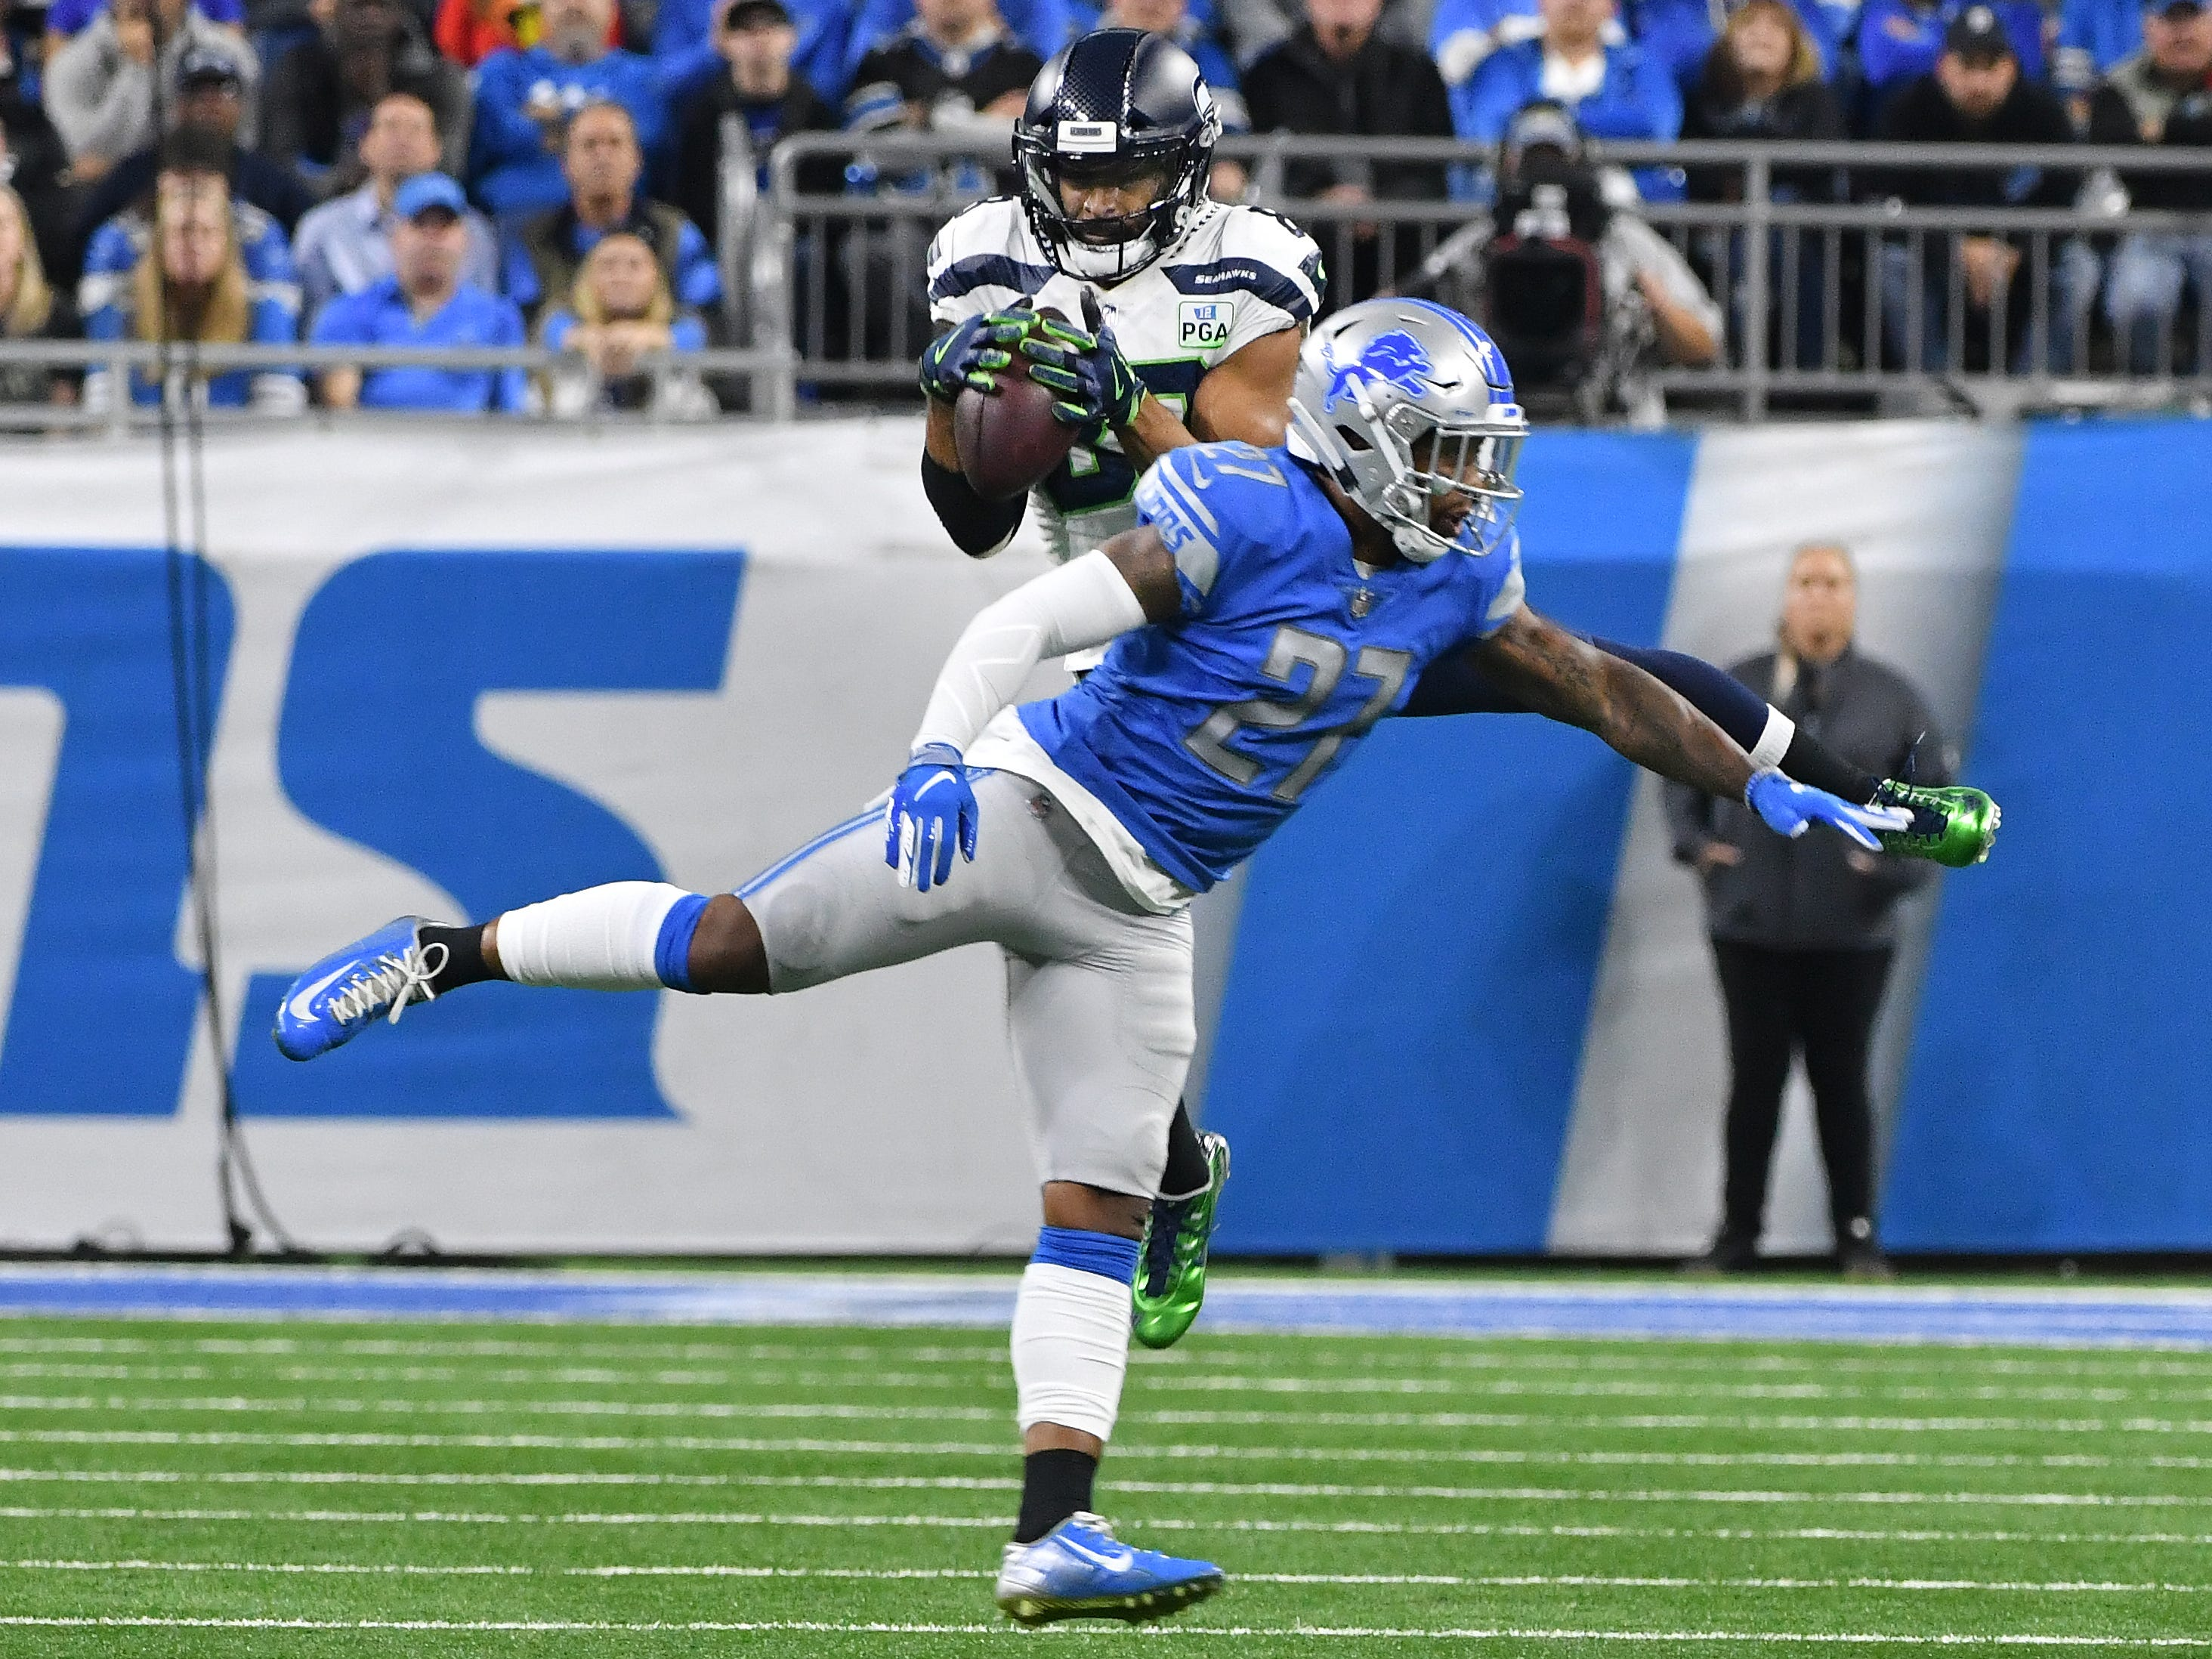 Seahawks' Doug Baldwin pulls in a reception with Lions' Glover Quin defending in the second quarter.